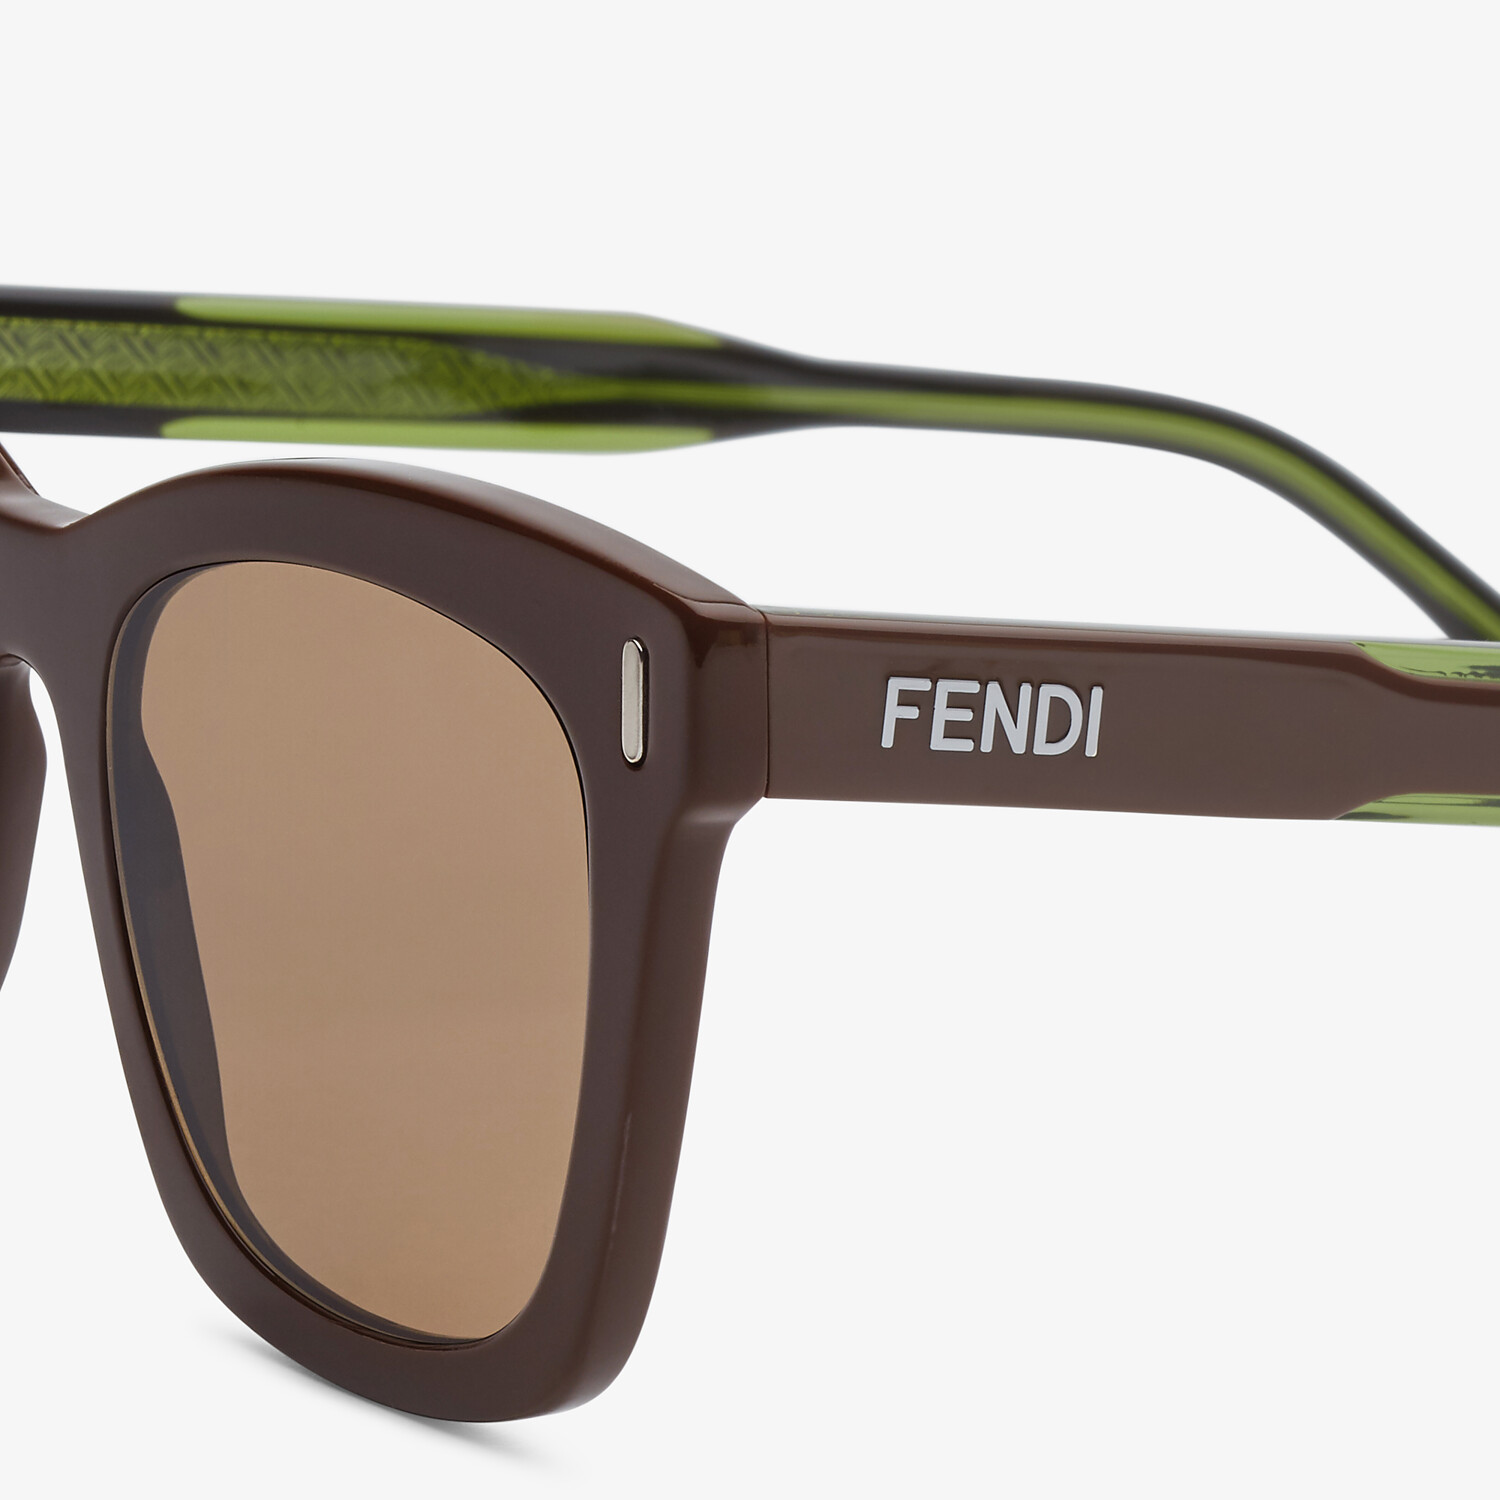 FENDI FENDI - Brown sunglasses - view 3 detail